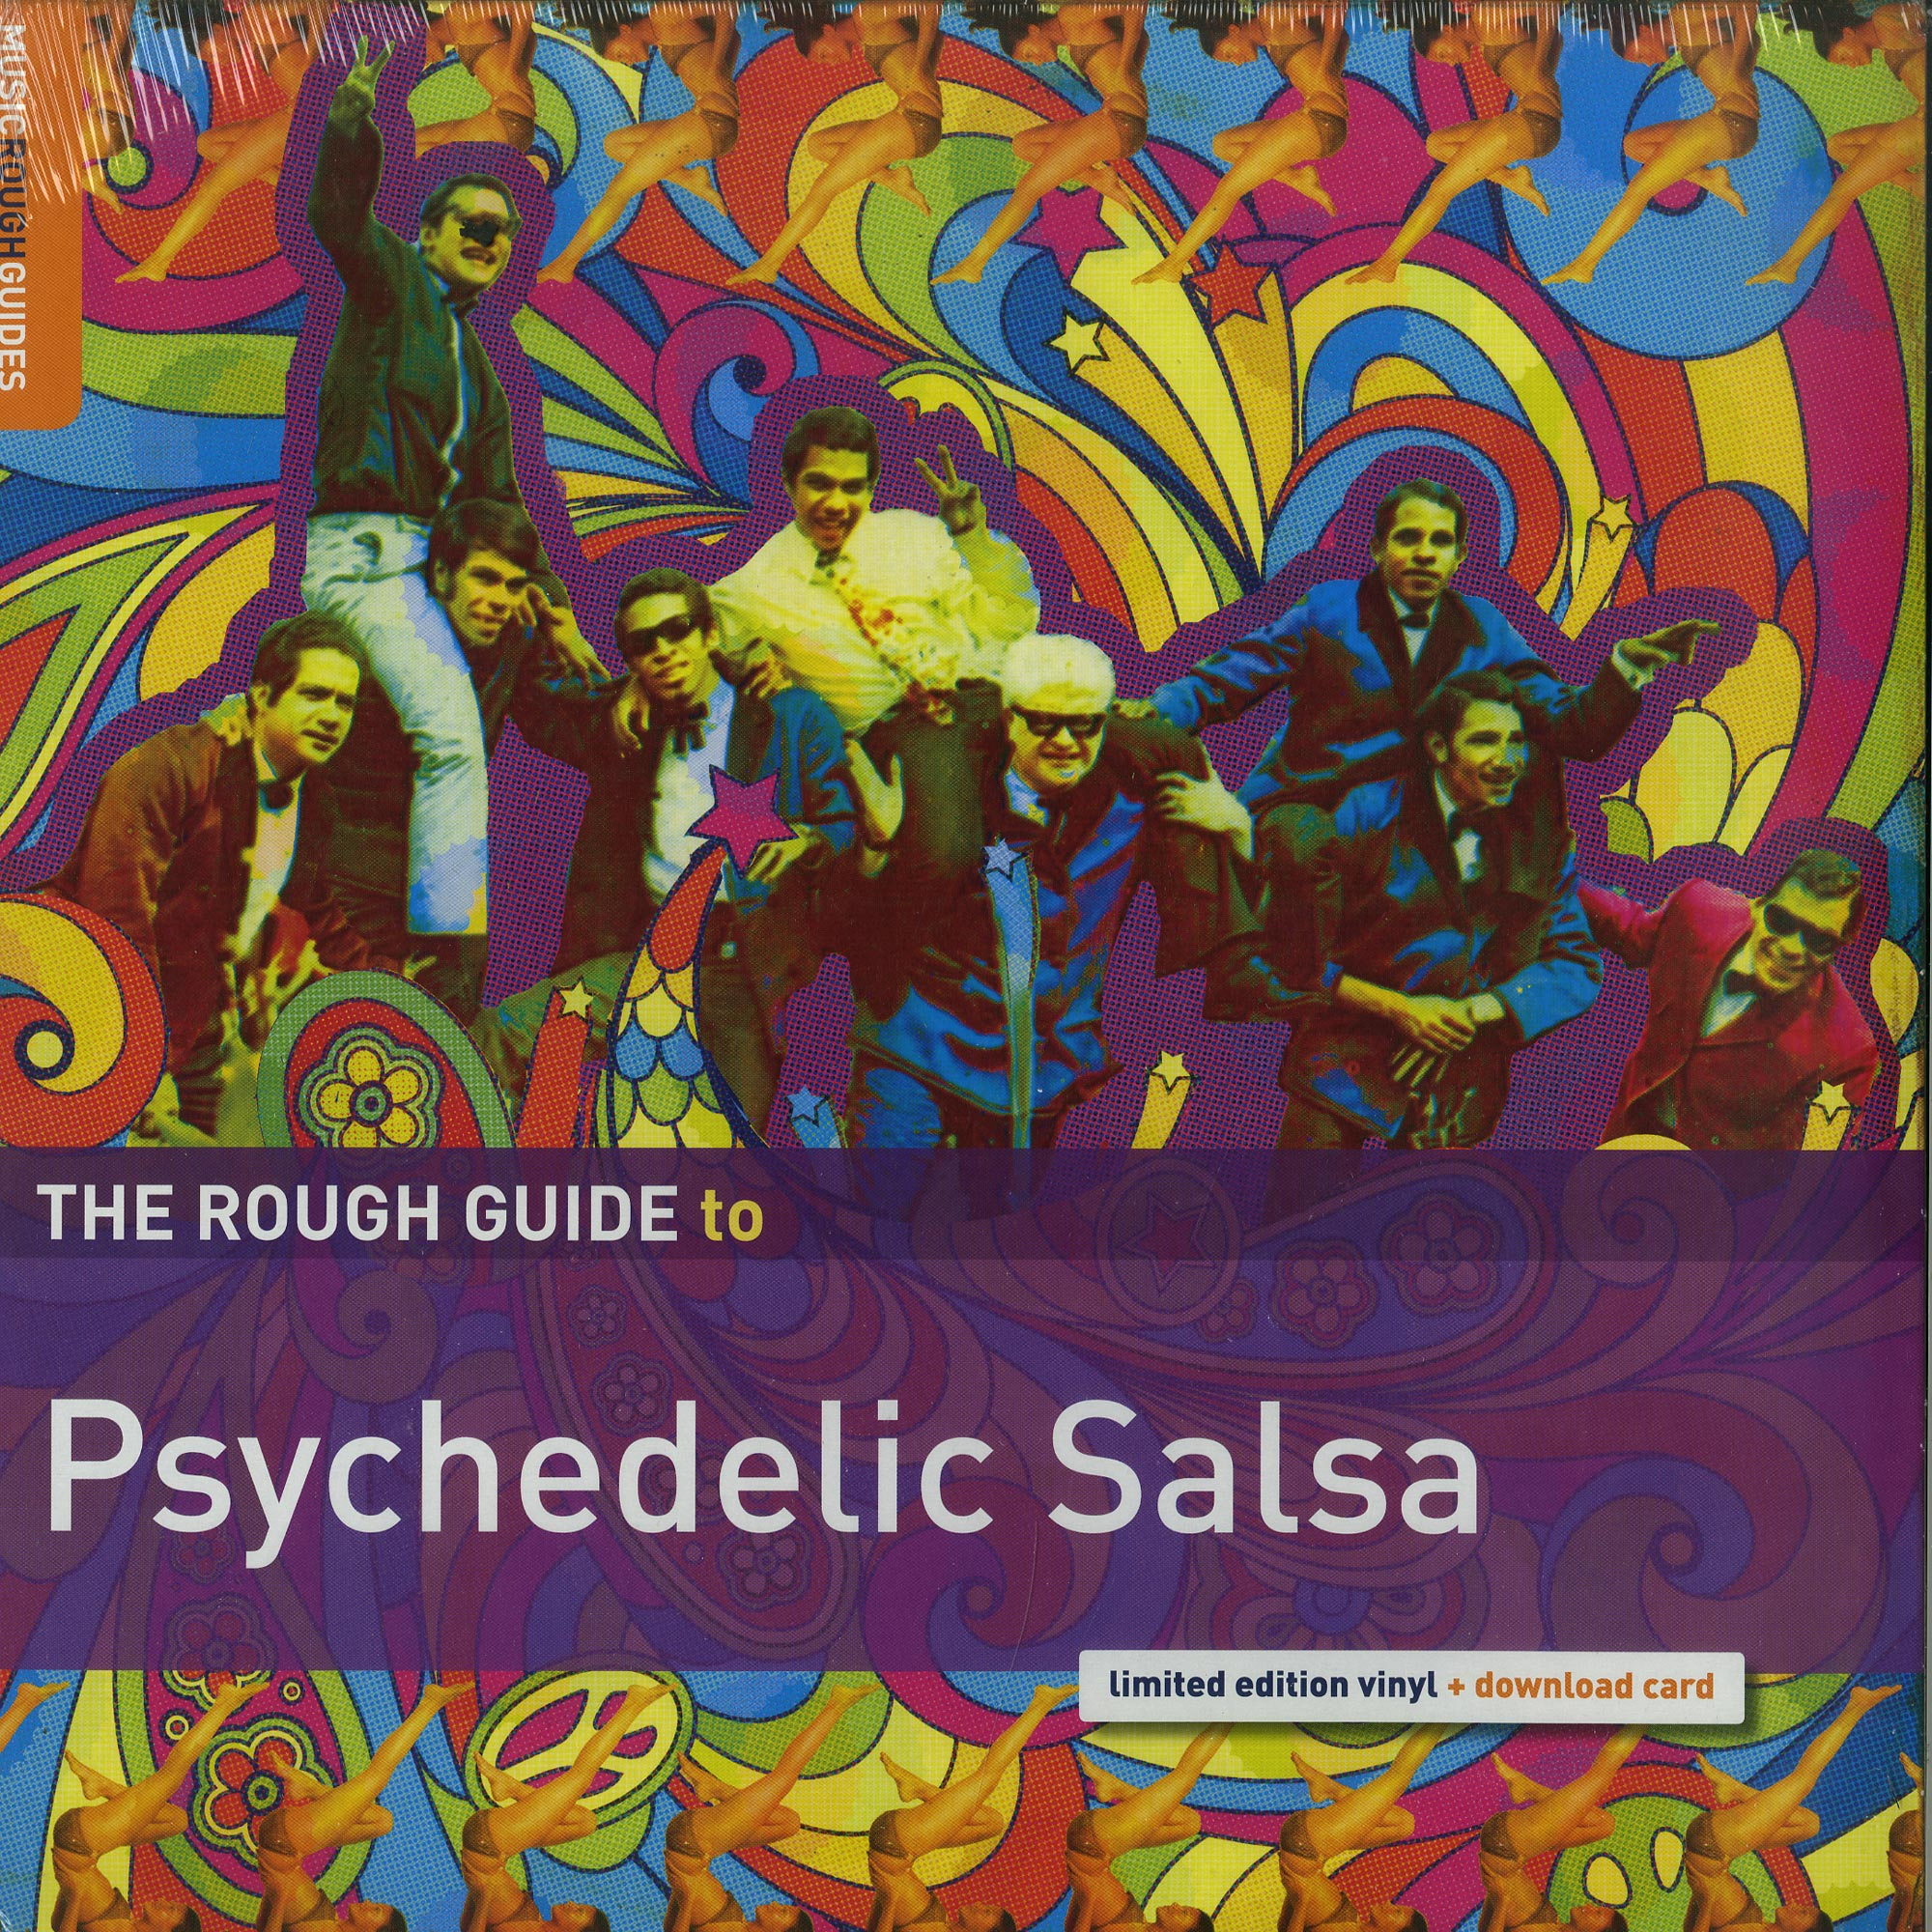 Various Artists - THE ROUGH GUIDE TO PSYCHEDELIC SALSA